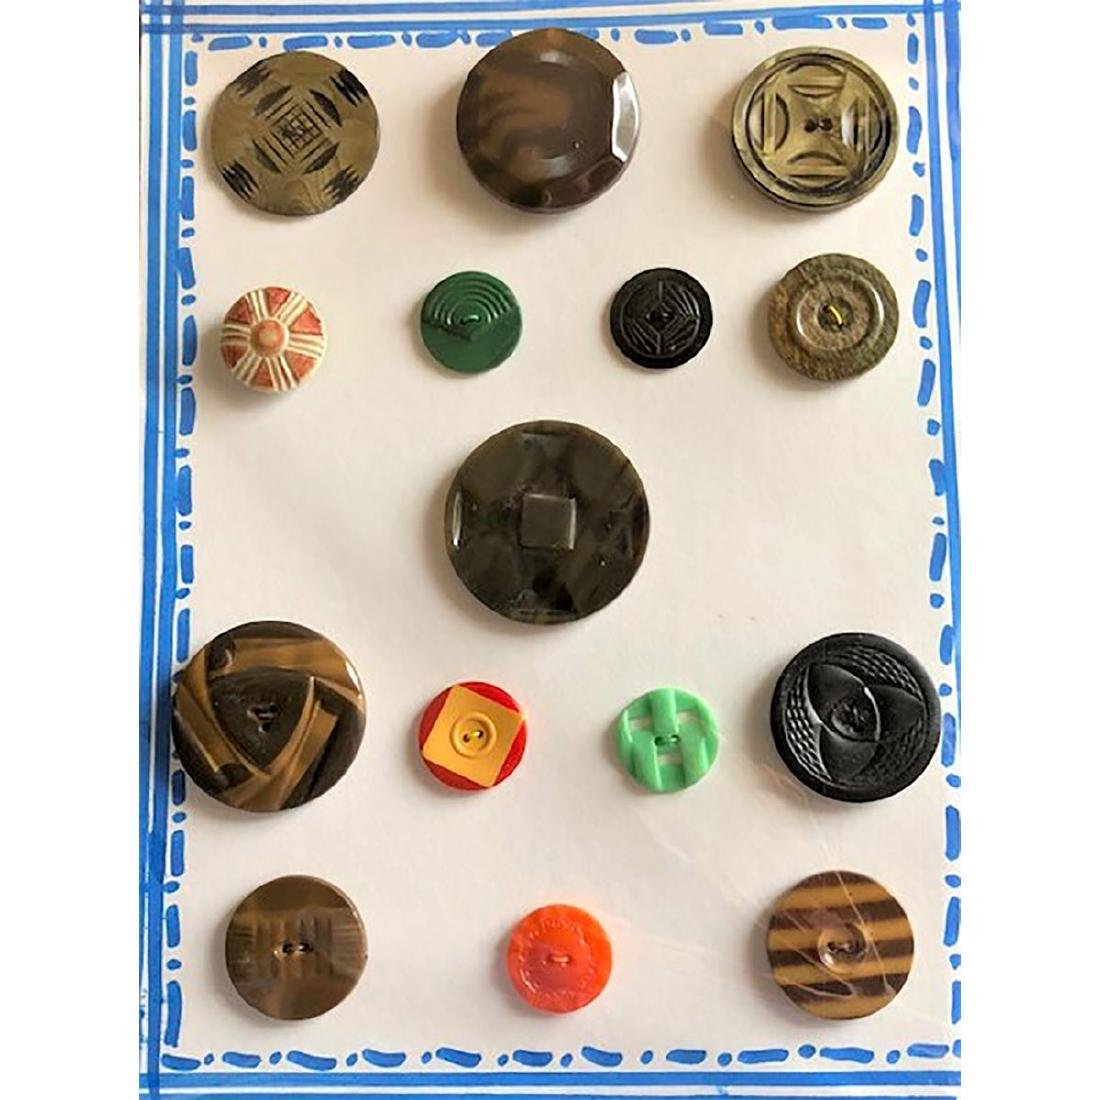 5 CARDS OF CELLULOID BUTTONS INCL COOKIES